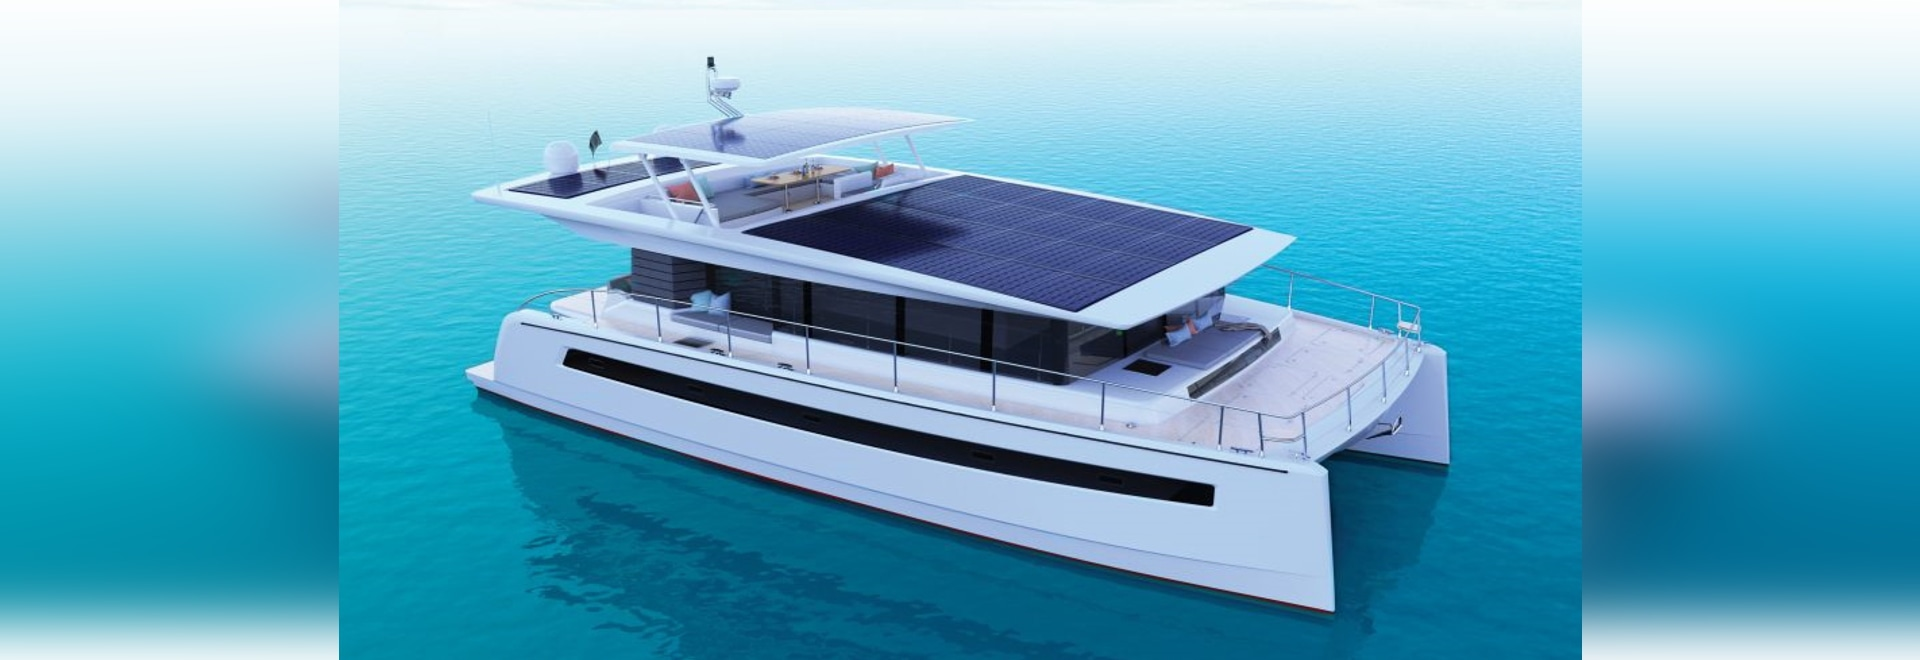 Silent 60: New looks and a new hull mean this electric yacht is full of promise